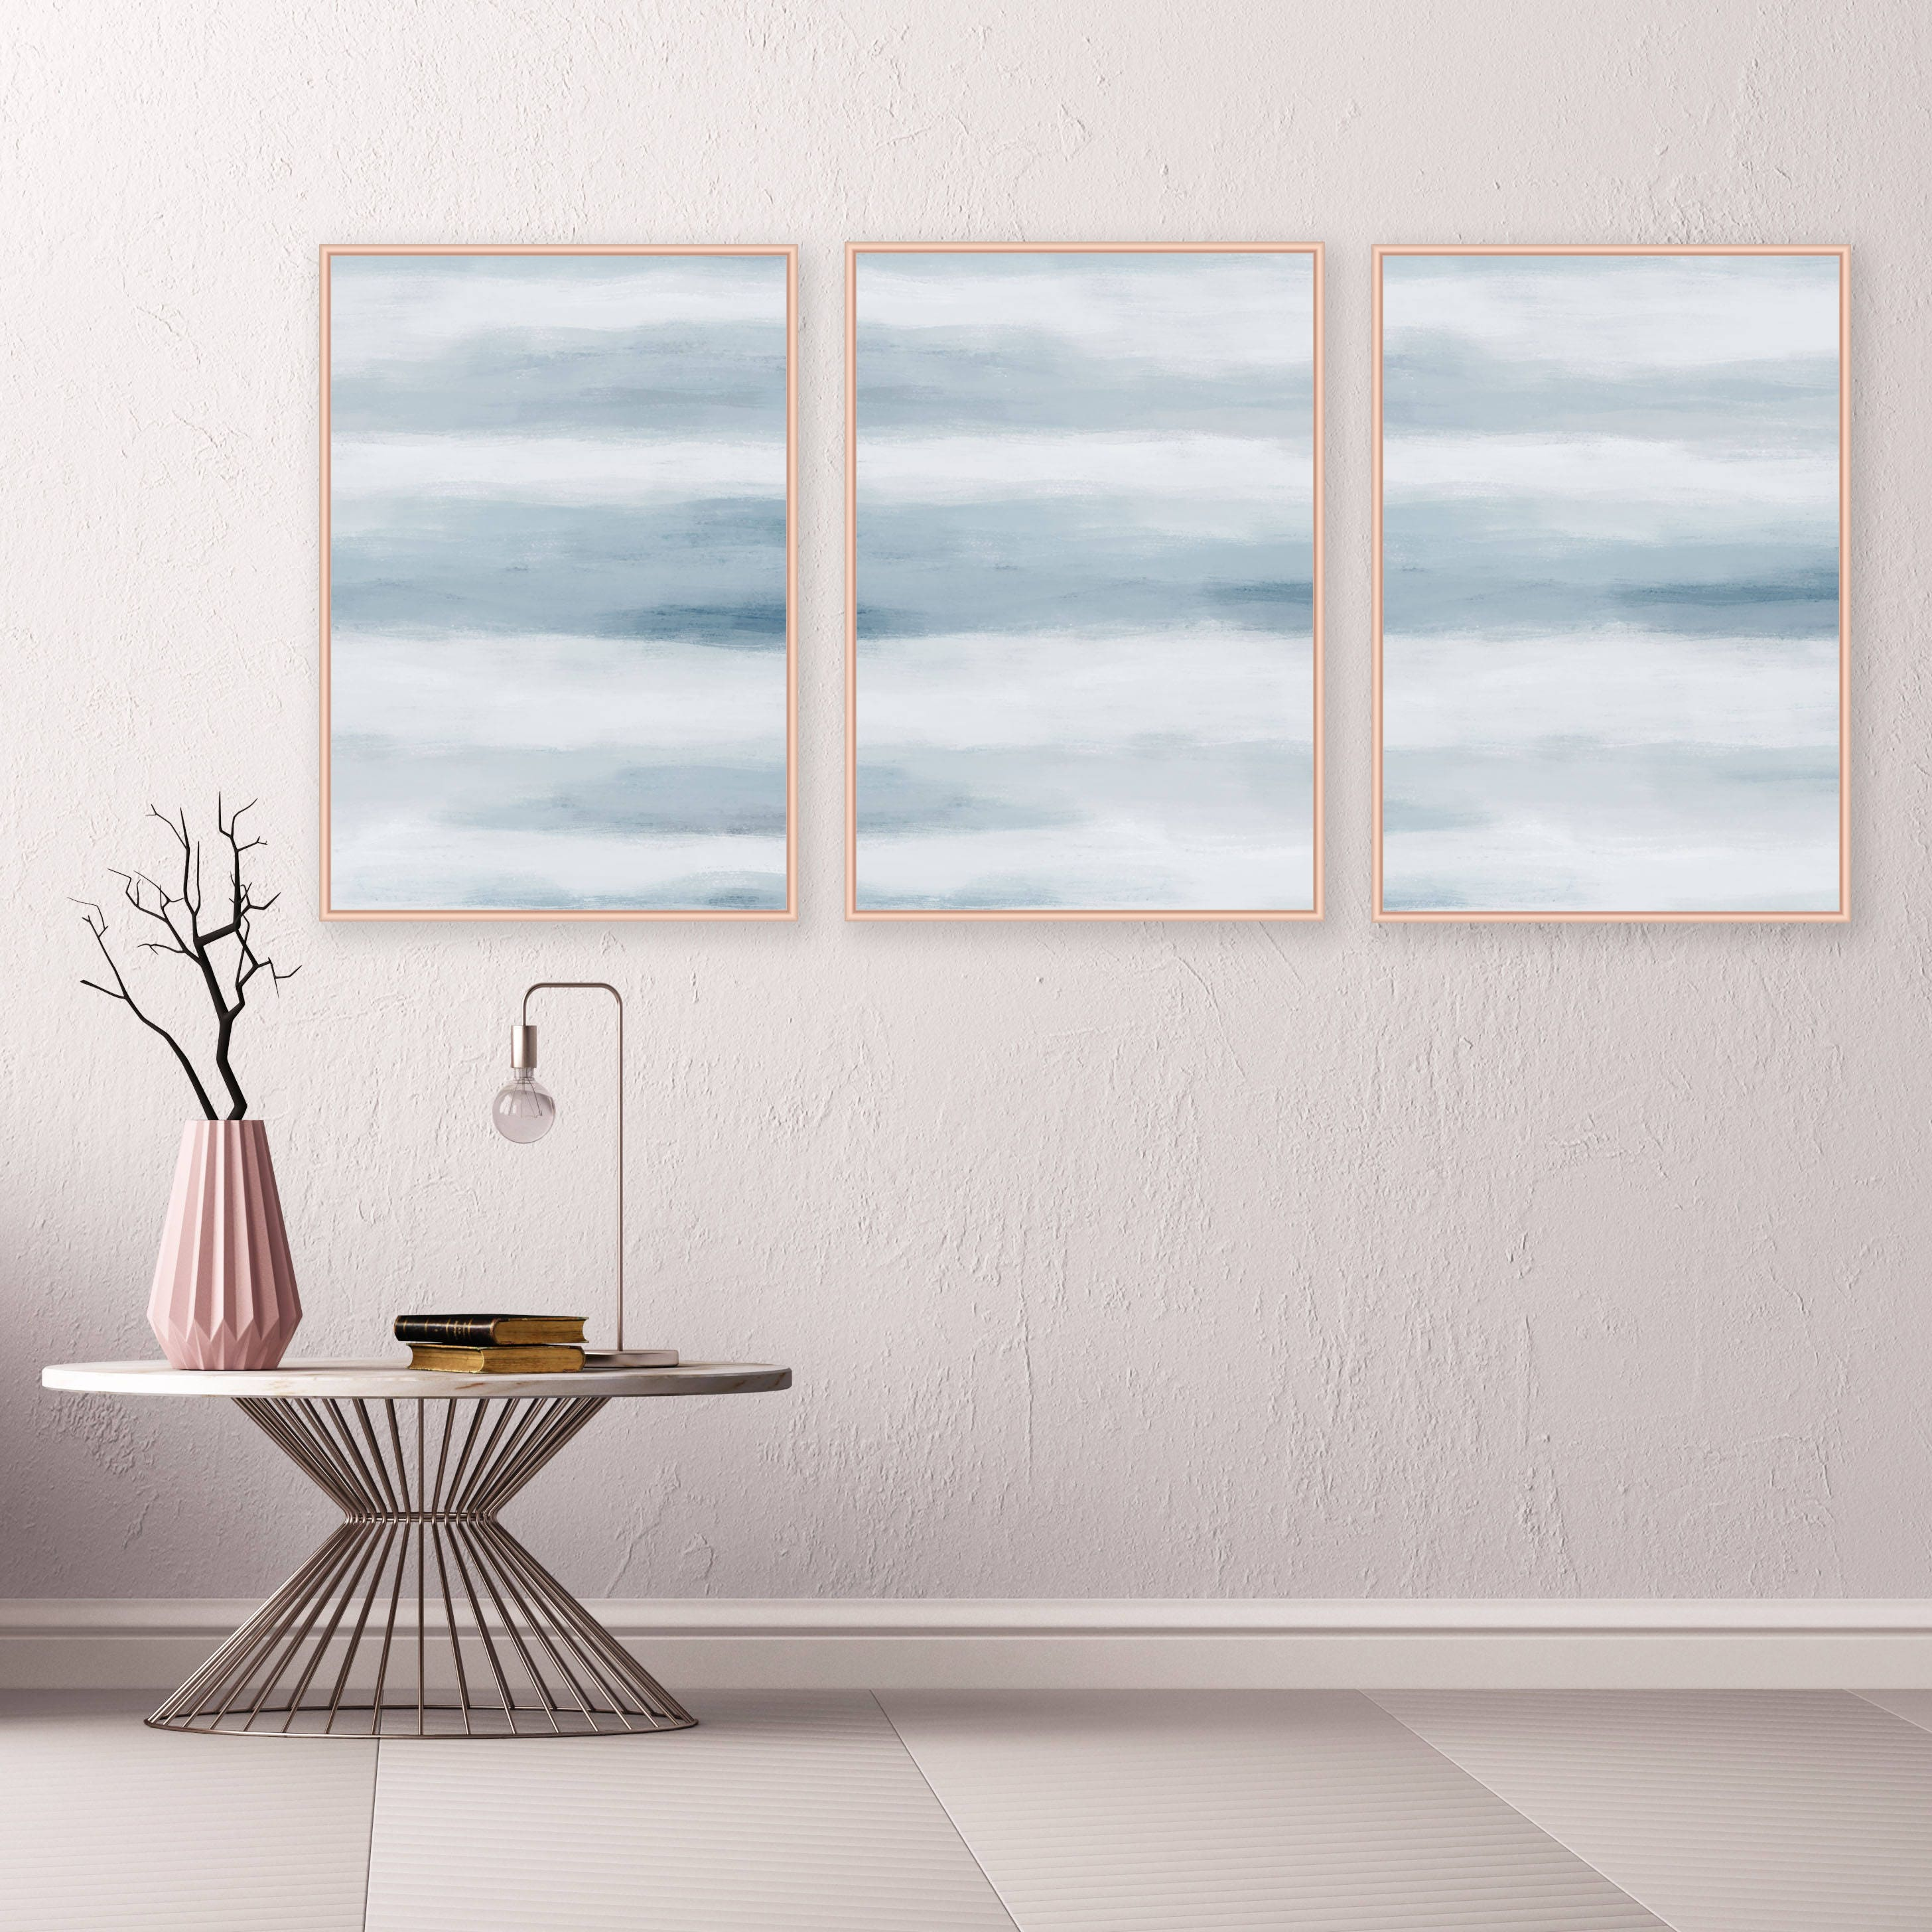 Wall decals choose an option 8x12 in 16x24 in 24x36 in - Instant Digital Download